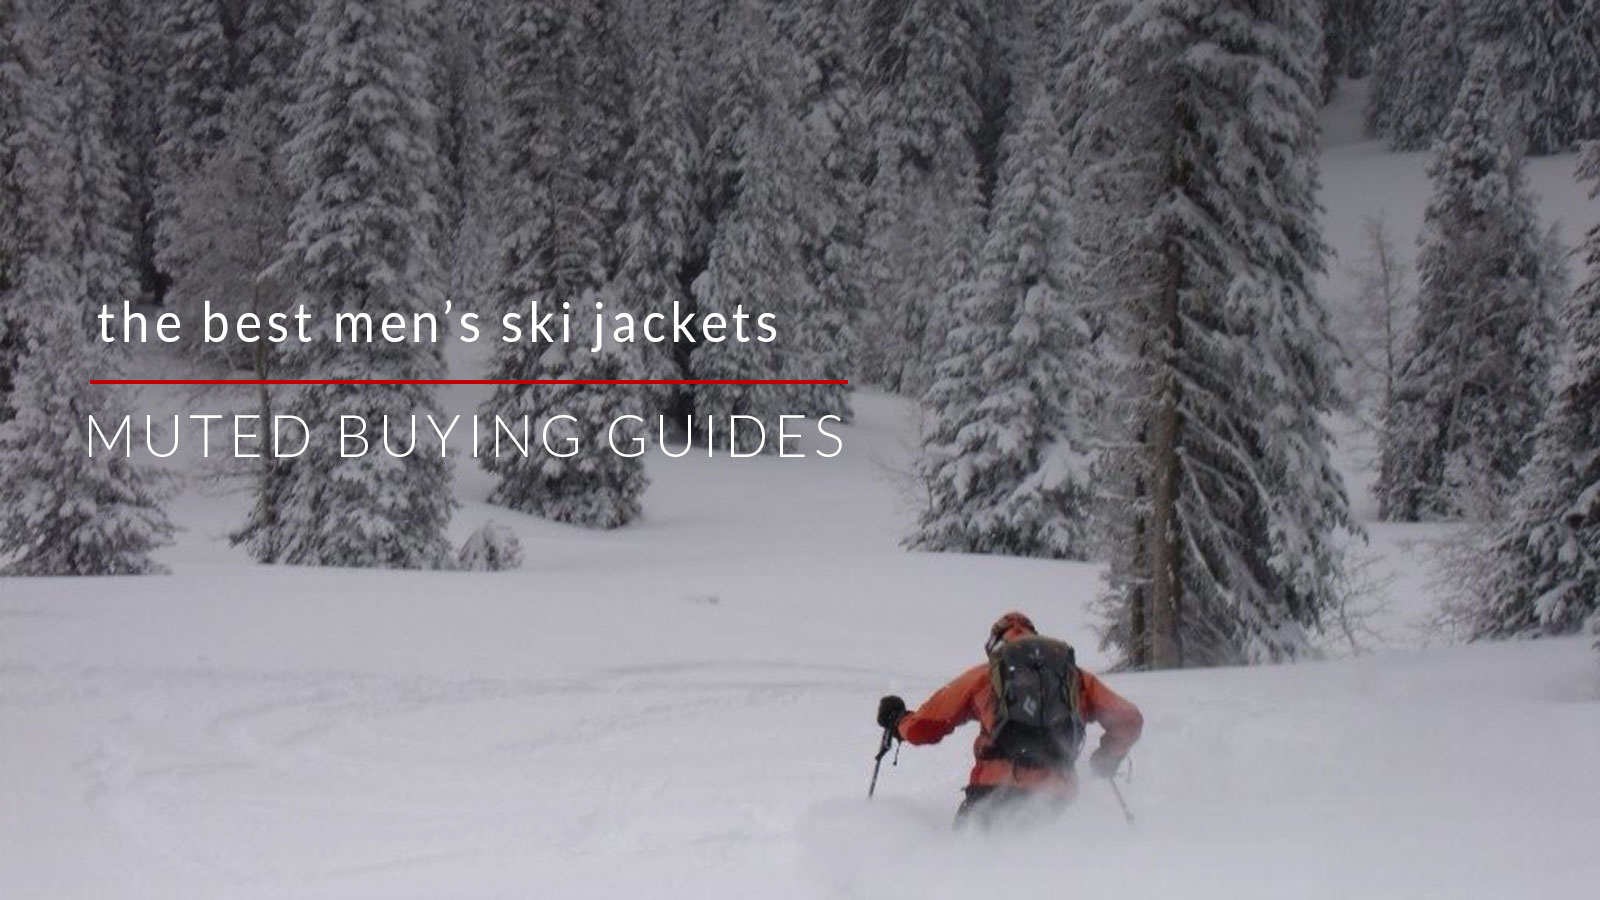 the best men's ski jackets